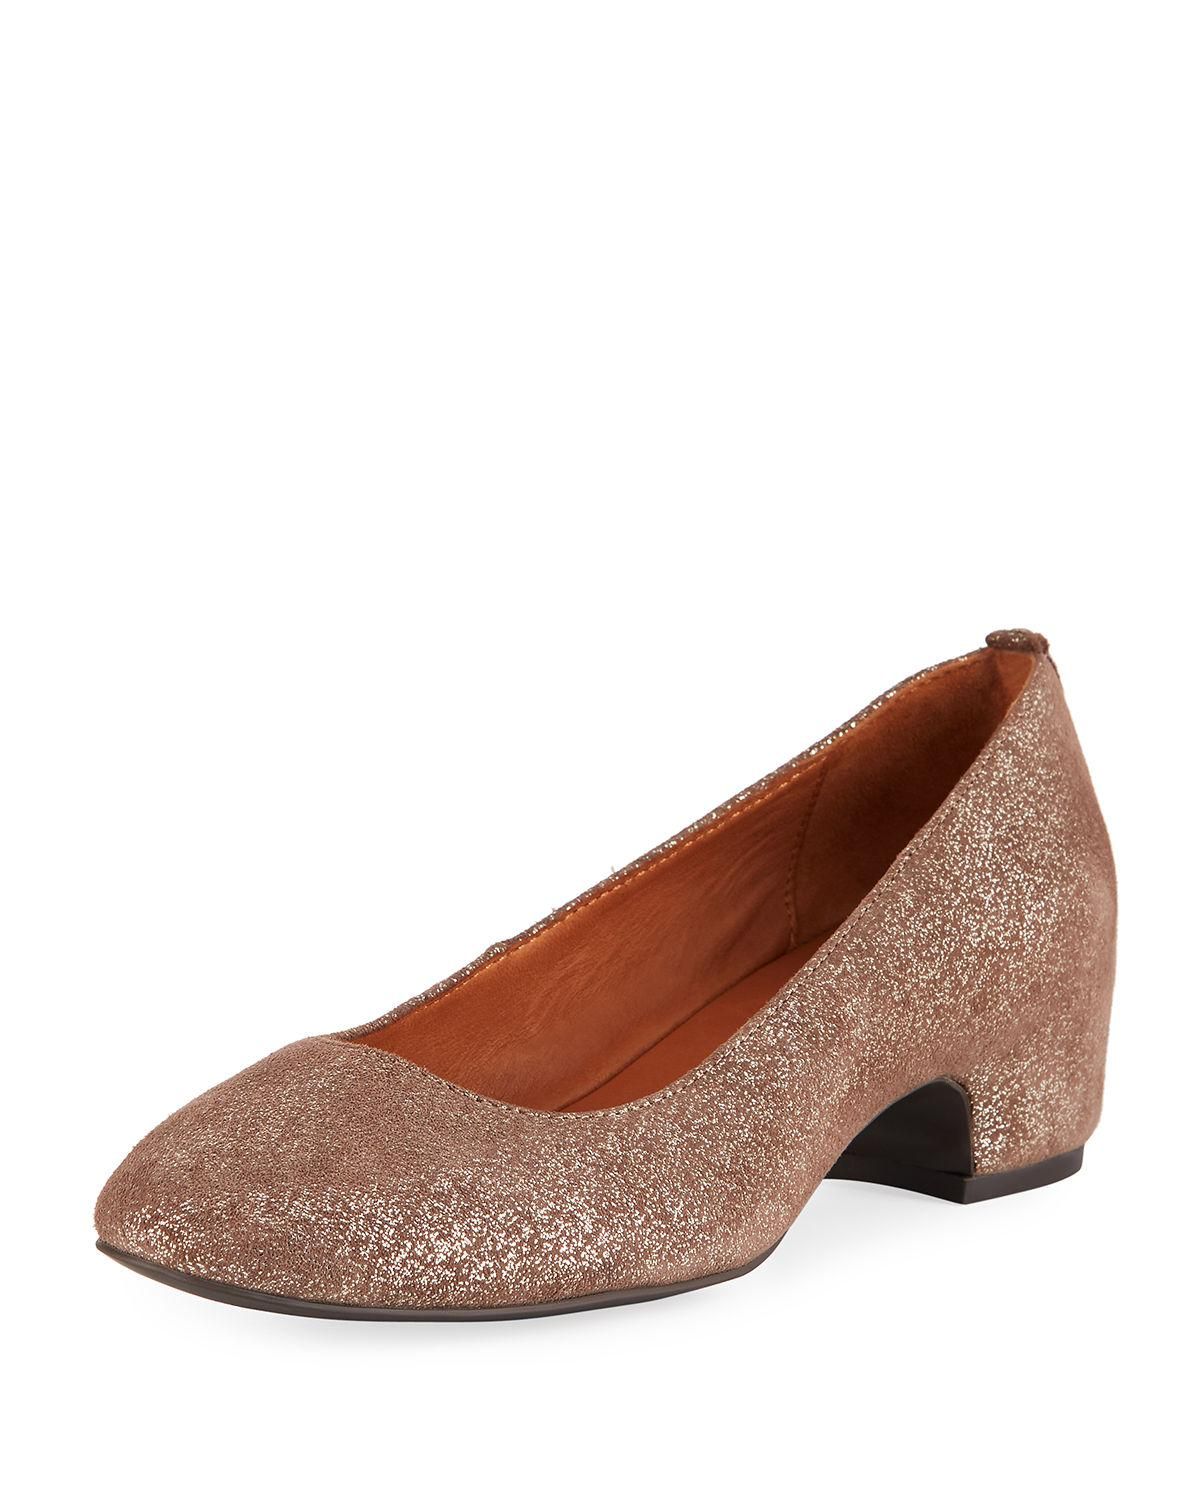 31c73e00de5 Gentle Souls. Women s Brown Priscille Crinkled Metallic Leather Low-heel  Pumps